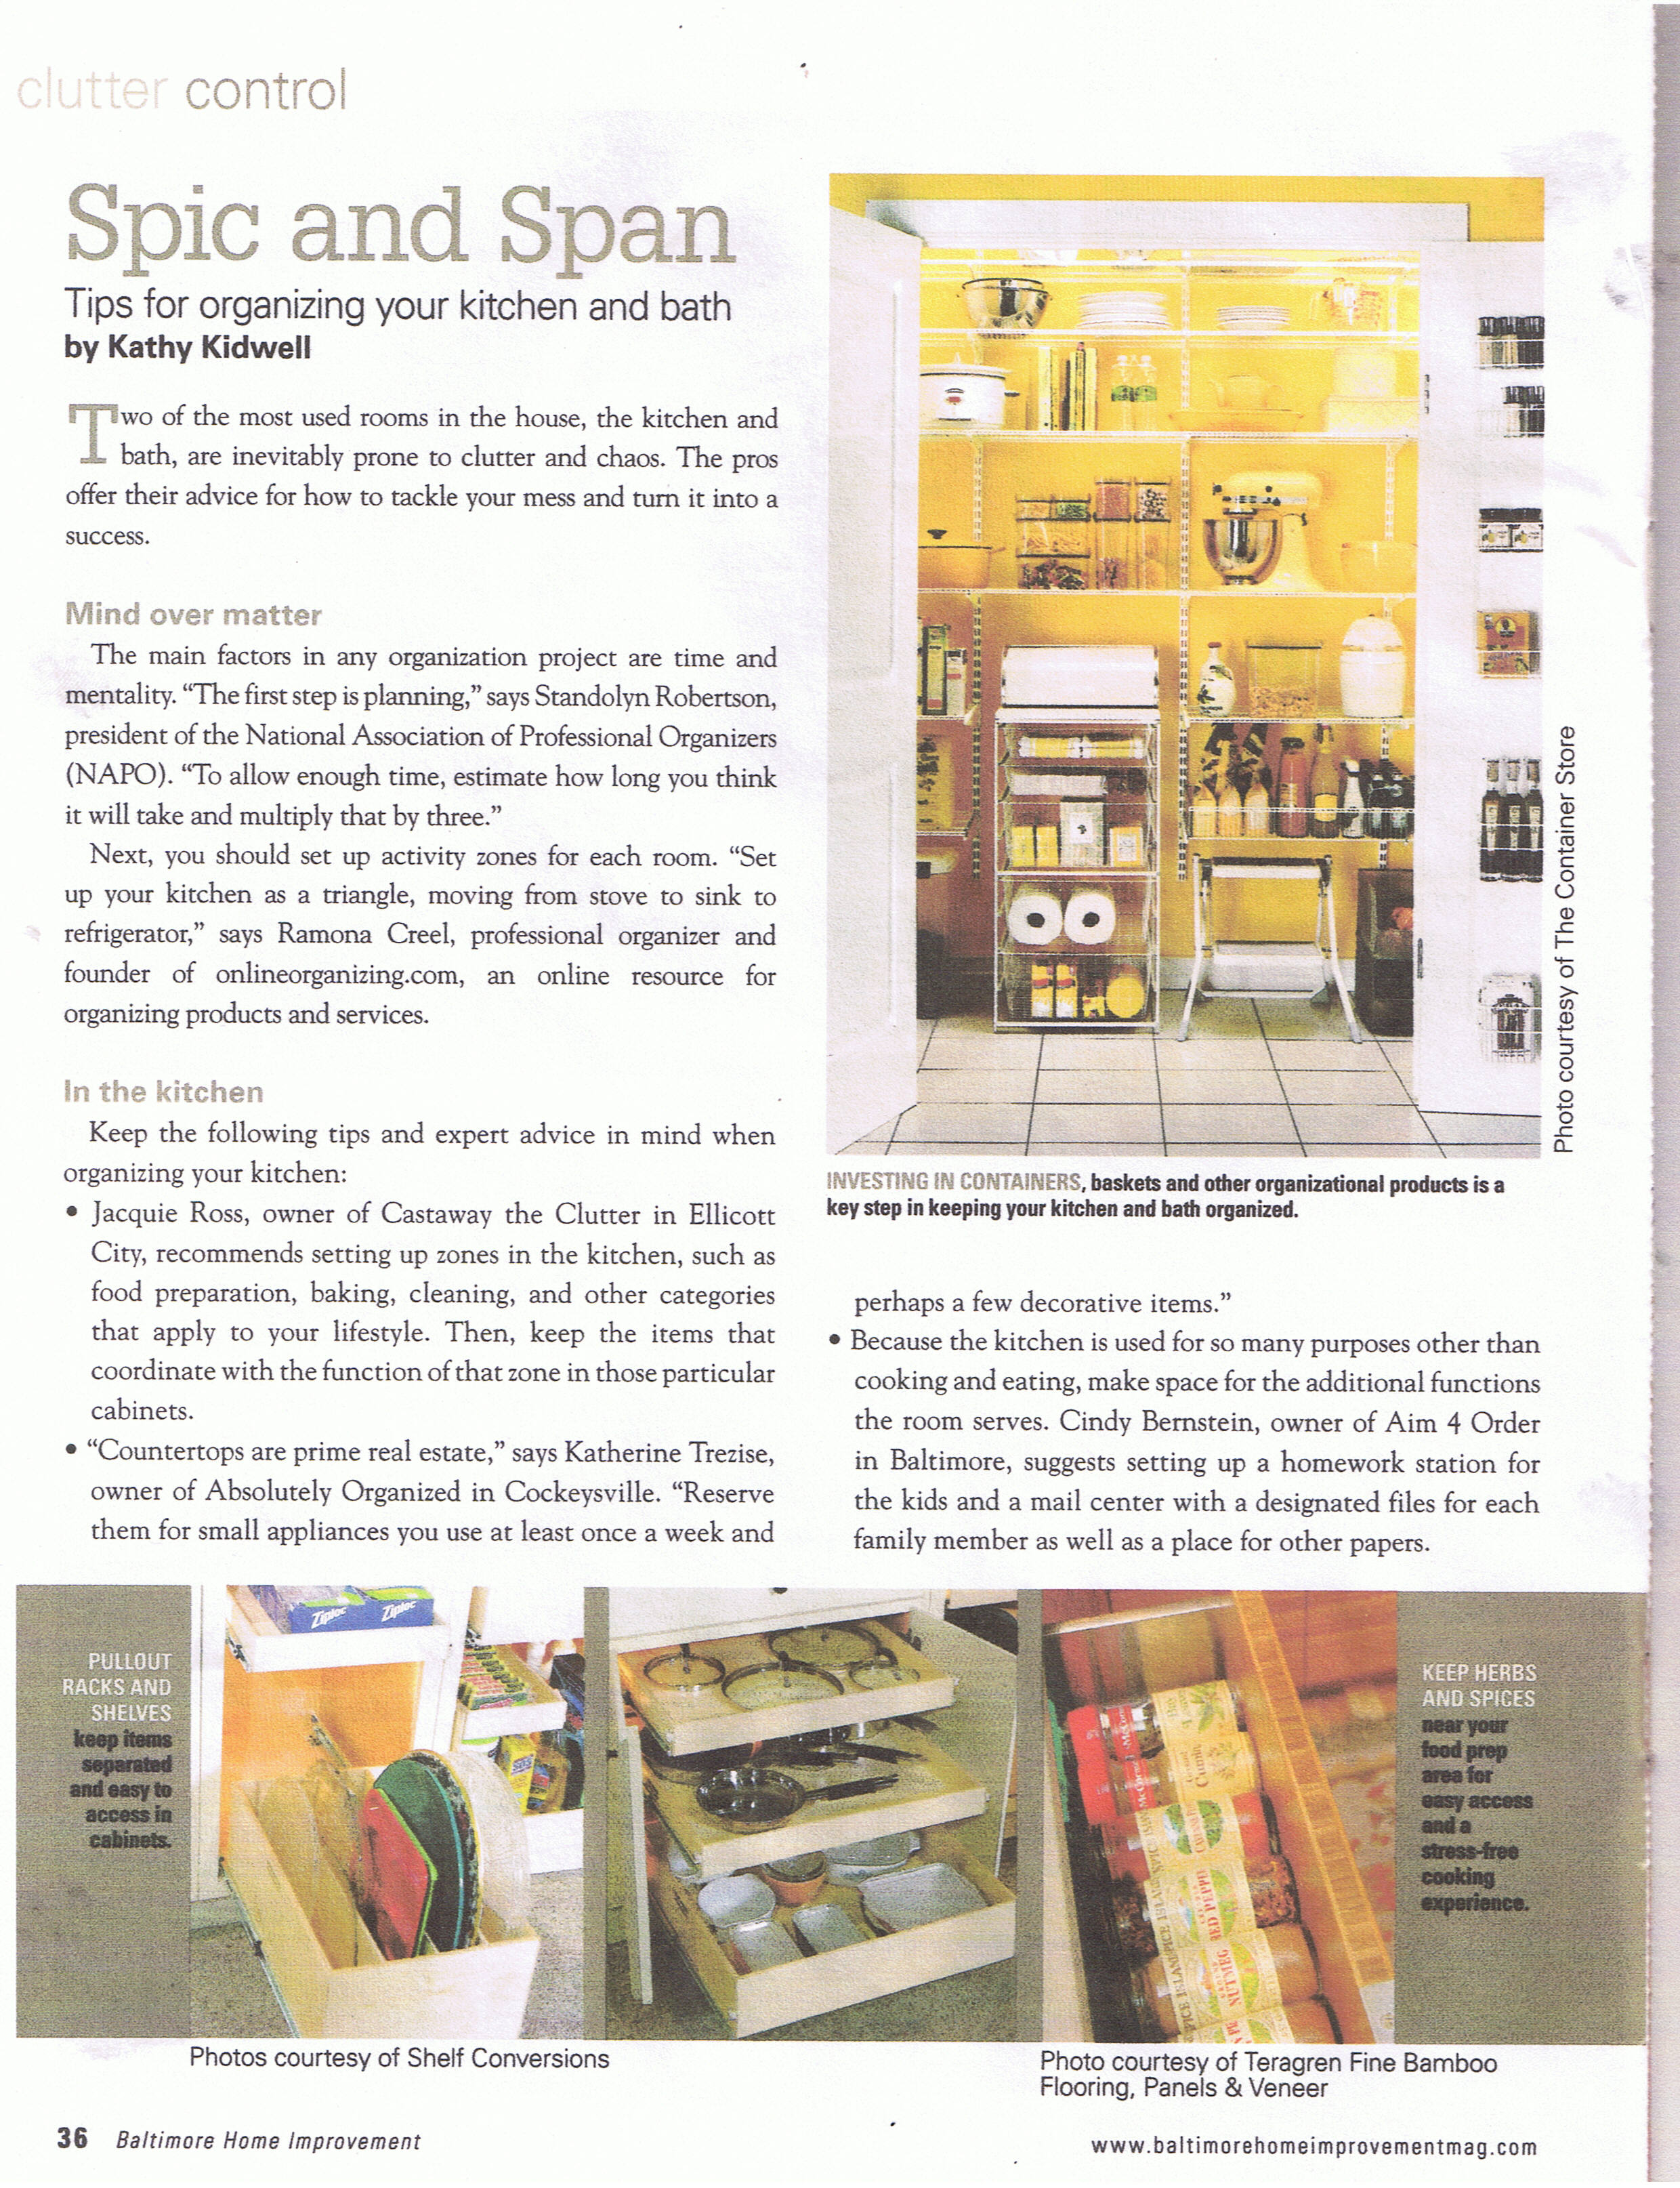 Amazing Spic___Span__pg.1__Baltimore_Home_Improvement_Magazine_2-16-08. 2480 x 3229 · 1280 kB · jpeg